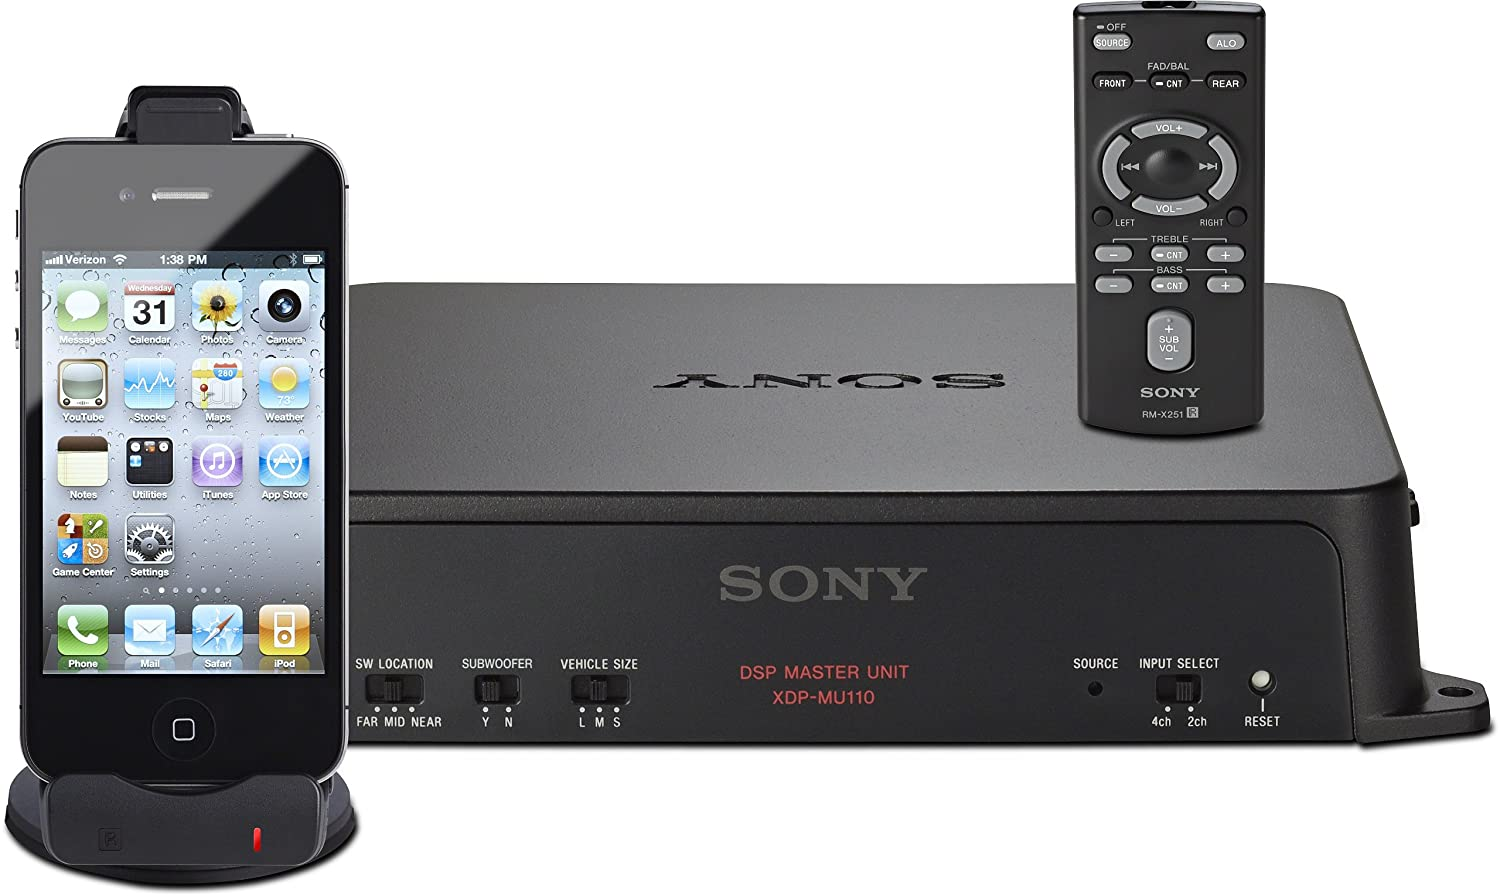 Sony XDPMU110 Digital Link Sound System (Discontinued by Manufacturer)